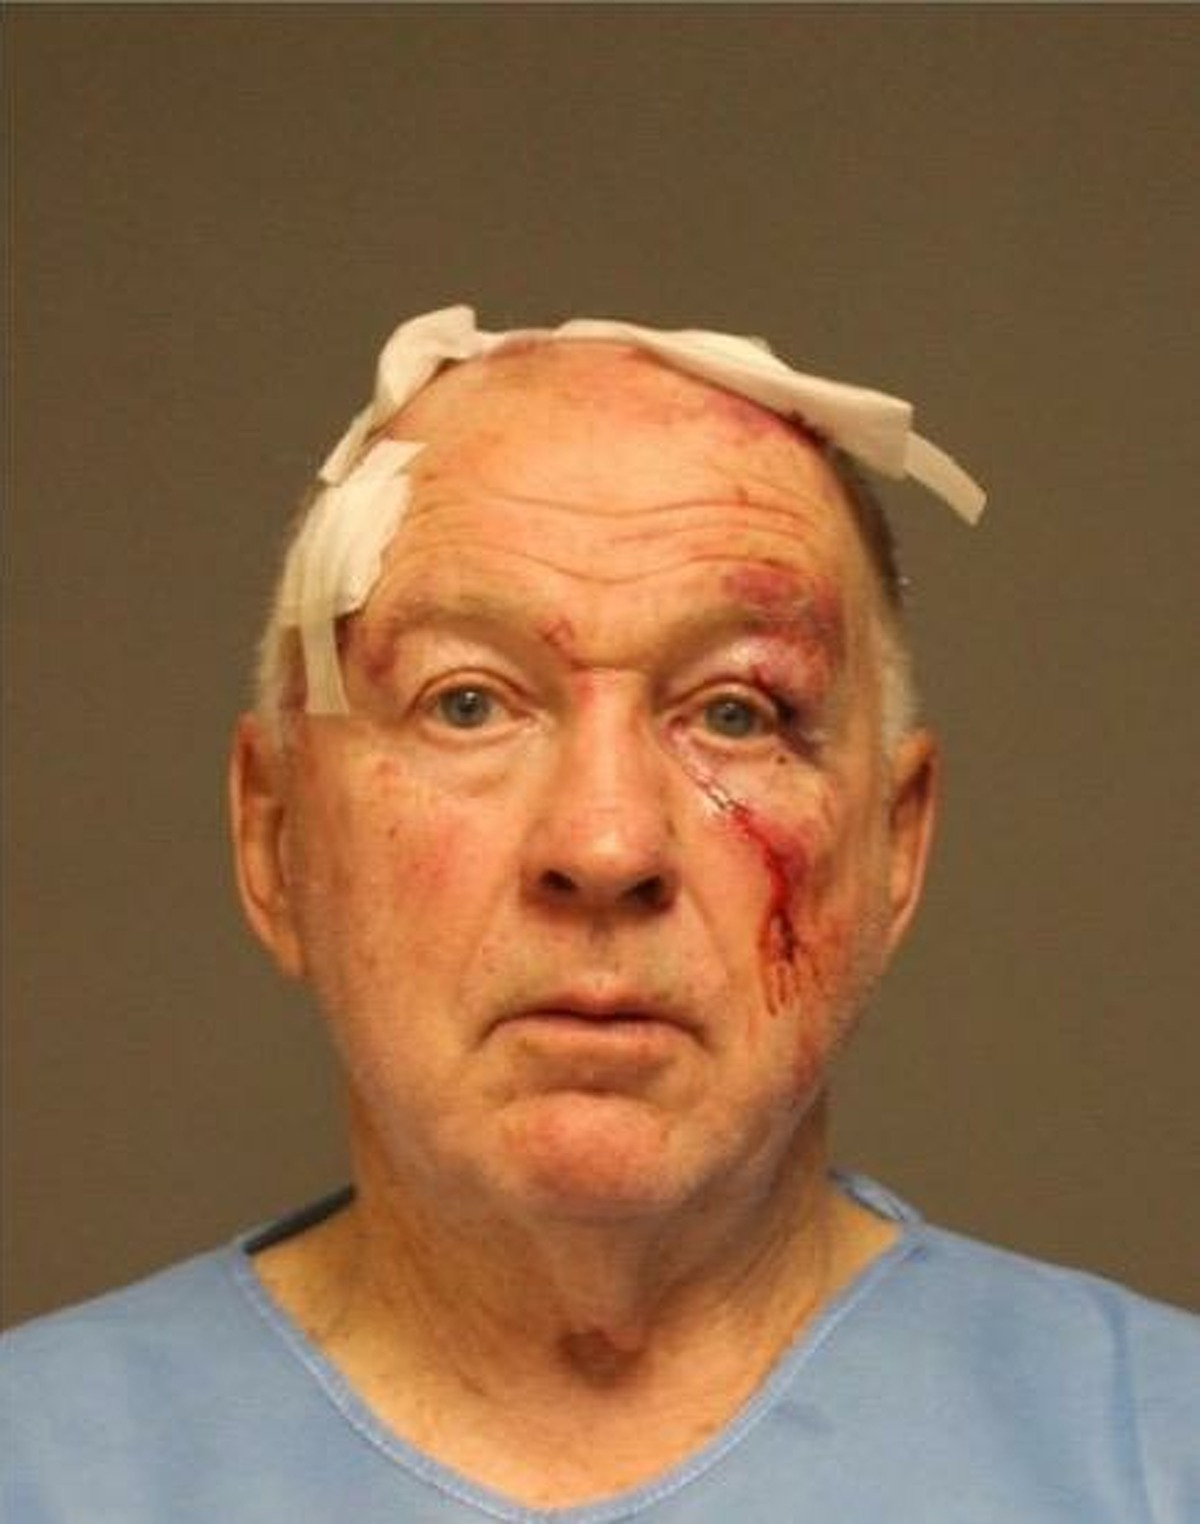 James Taylor, 75, of Redding Road, Fairfield, is been charged with murder in the death of his ex-wife.